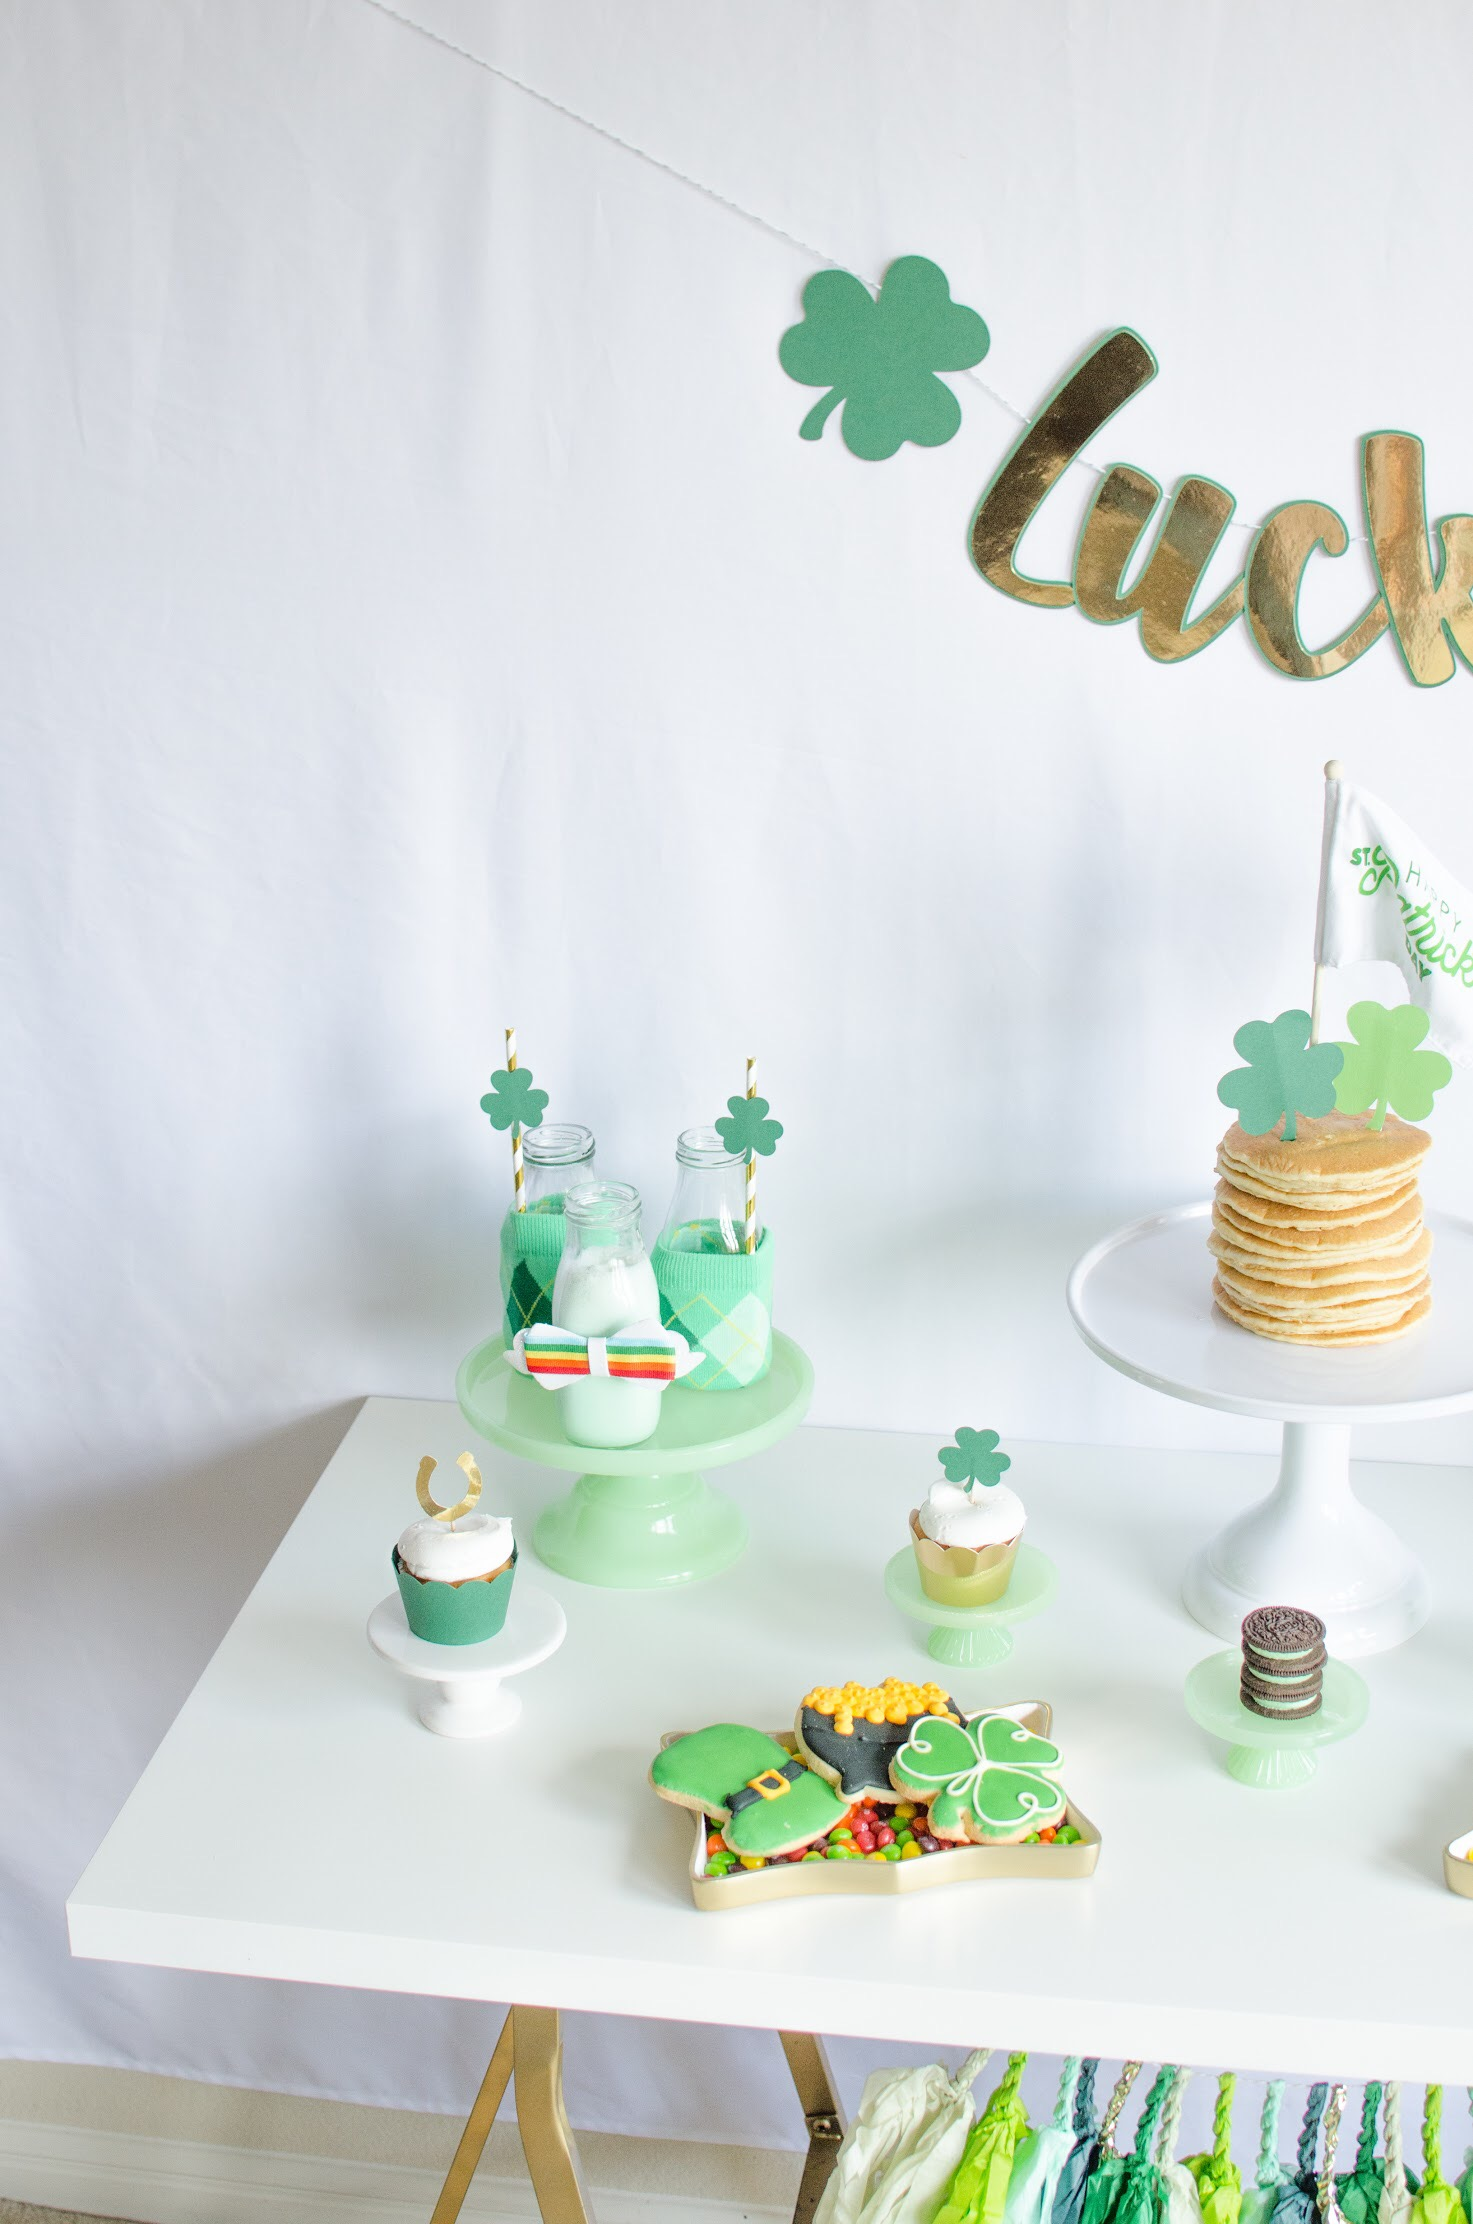 Perfect St. Patrick's Day breakfast idea from Mint Event Design www.minteventdesign.com #partyideas #partydecorations #saintpatricksday #stpatricksday #tablescape #desserttable